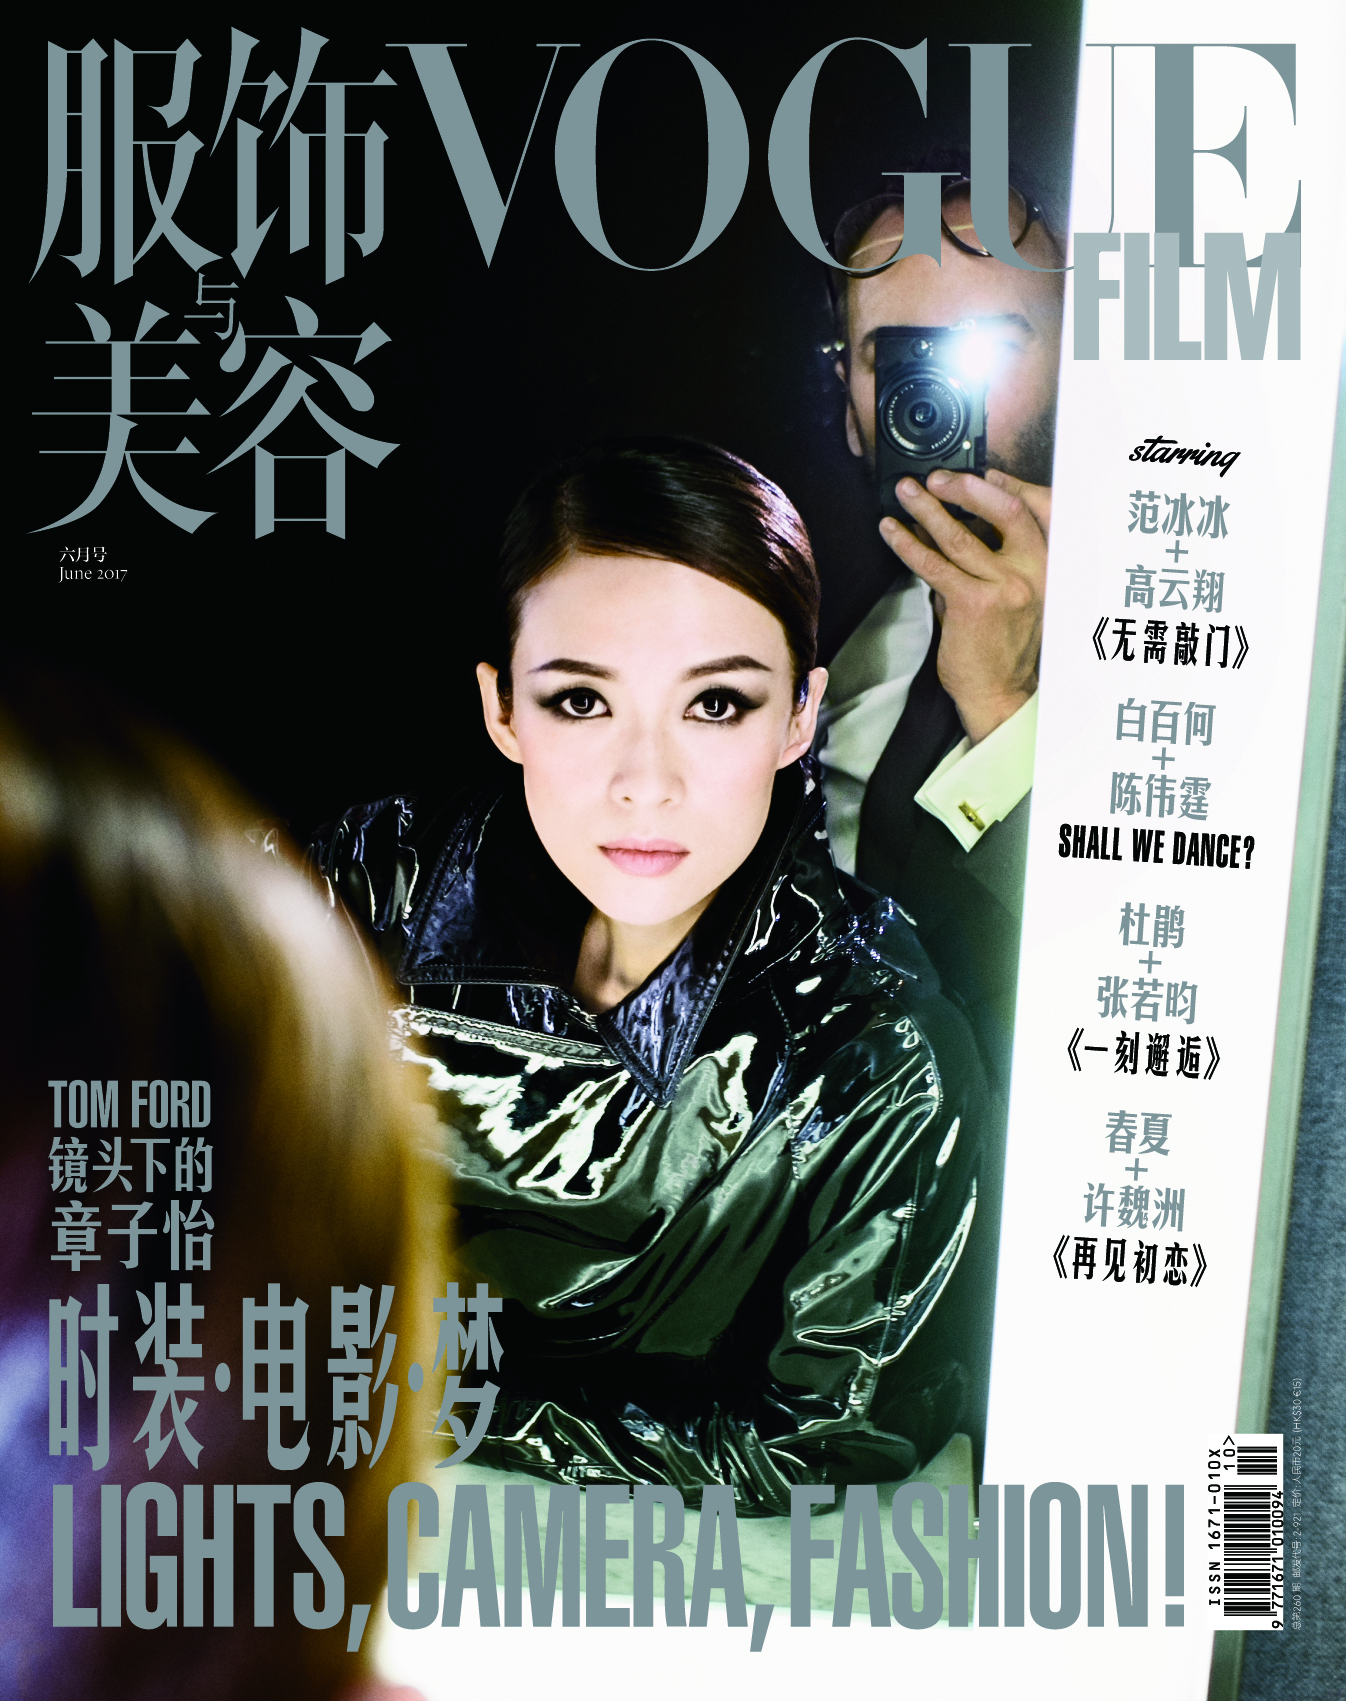 Zhang Ziyi VOGUE CHINA Jun17 - RichardCover.jpg